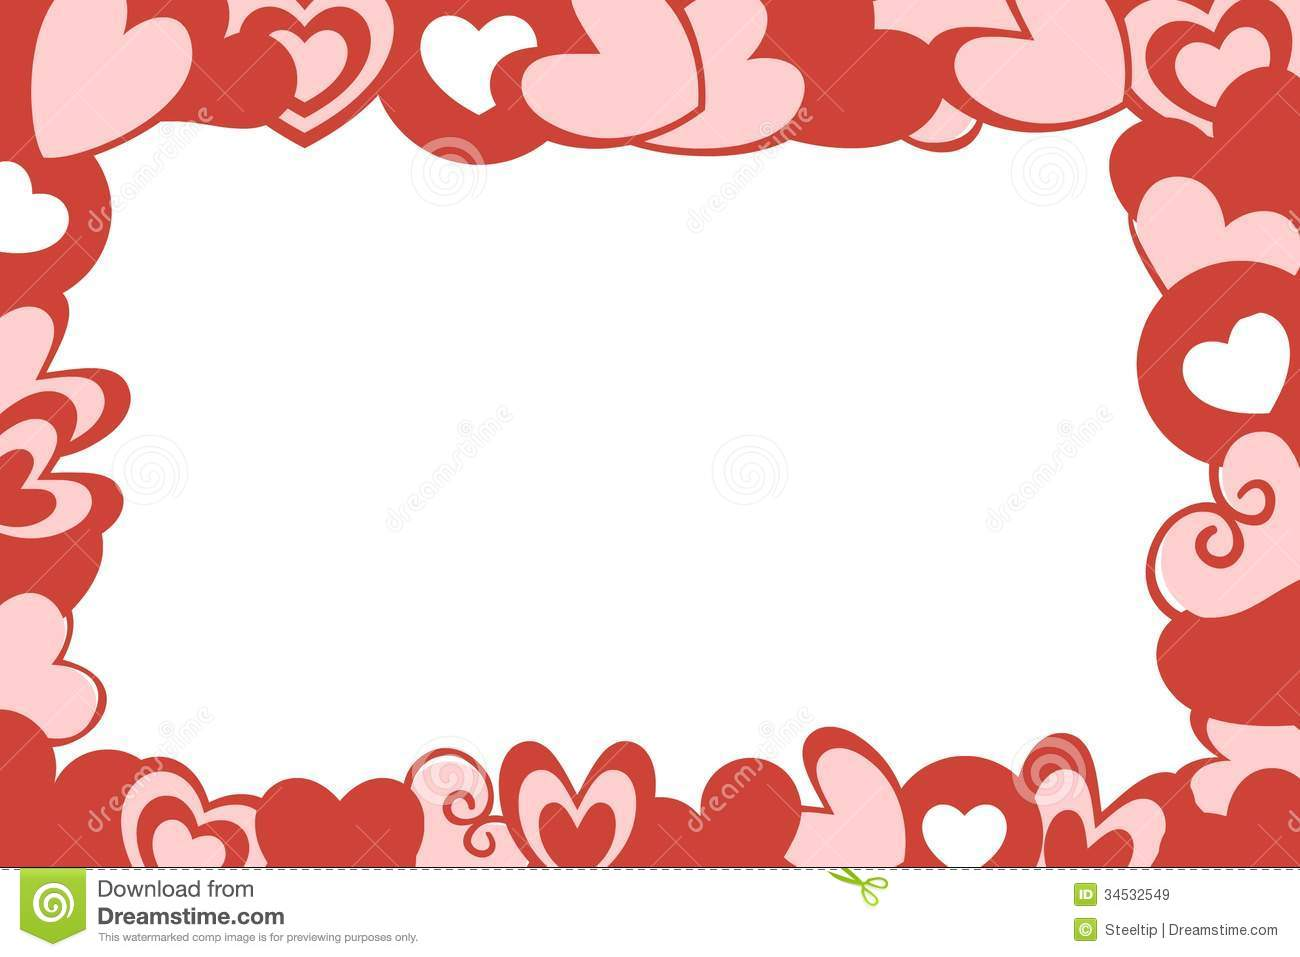 White Backgrounds With Red Designs Valentine hearts frame whiteWhite Backgrounds With Red Designs